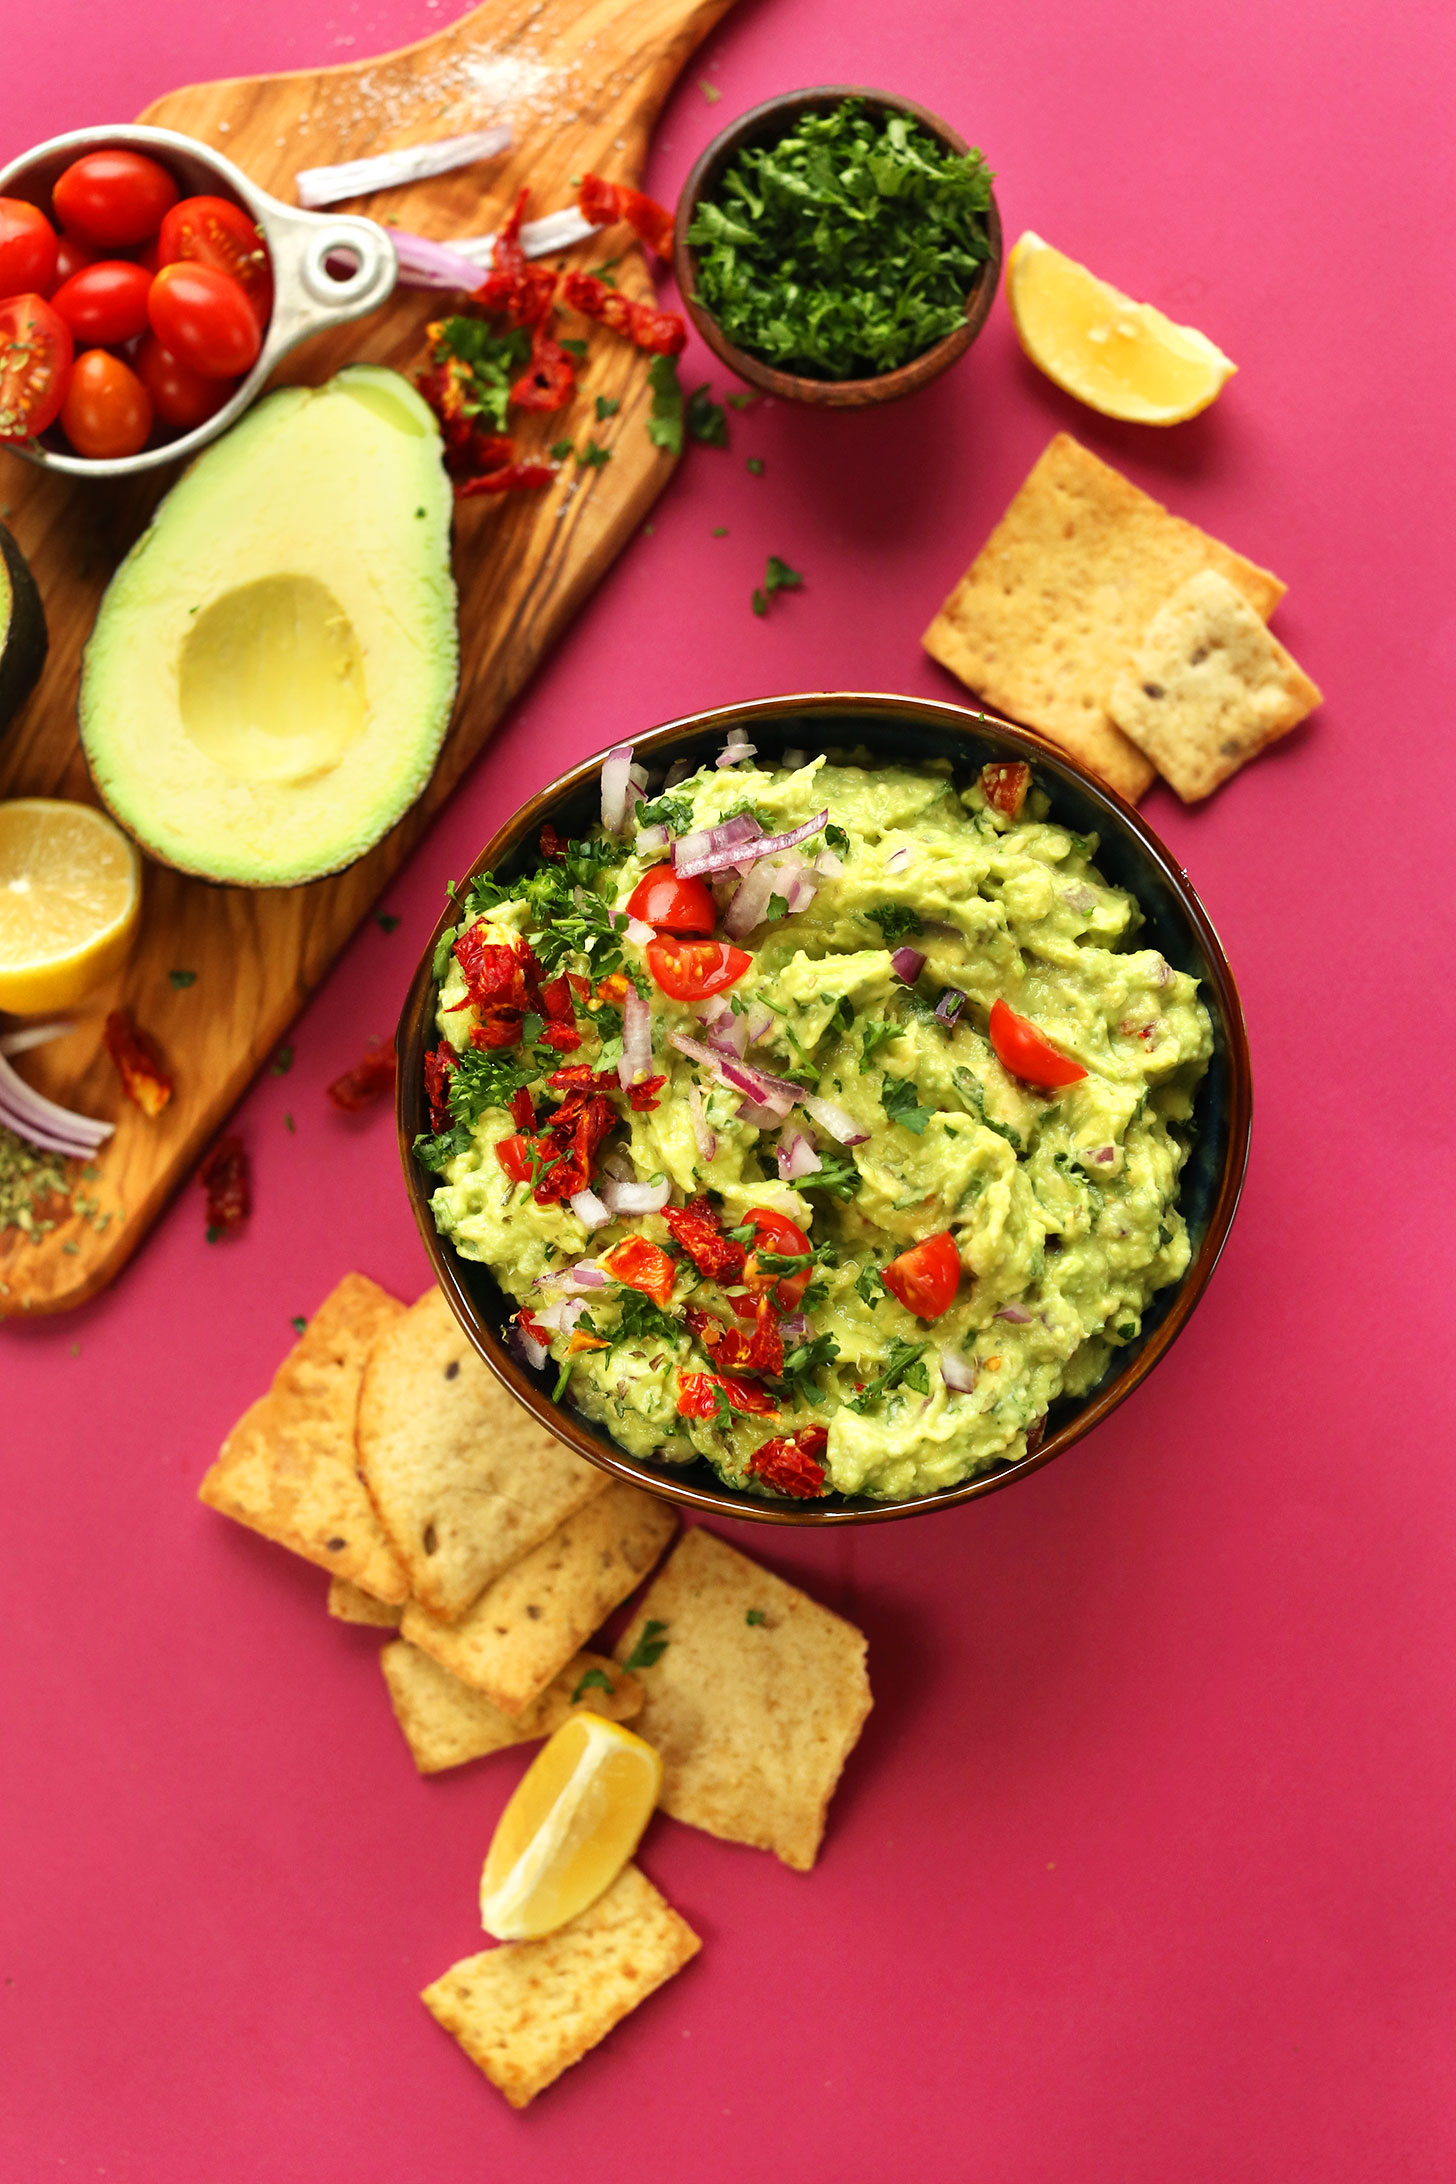 Bowl of vegan Greek-inspired Guacamole with crackers for dipping